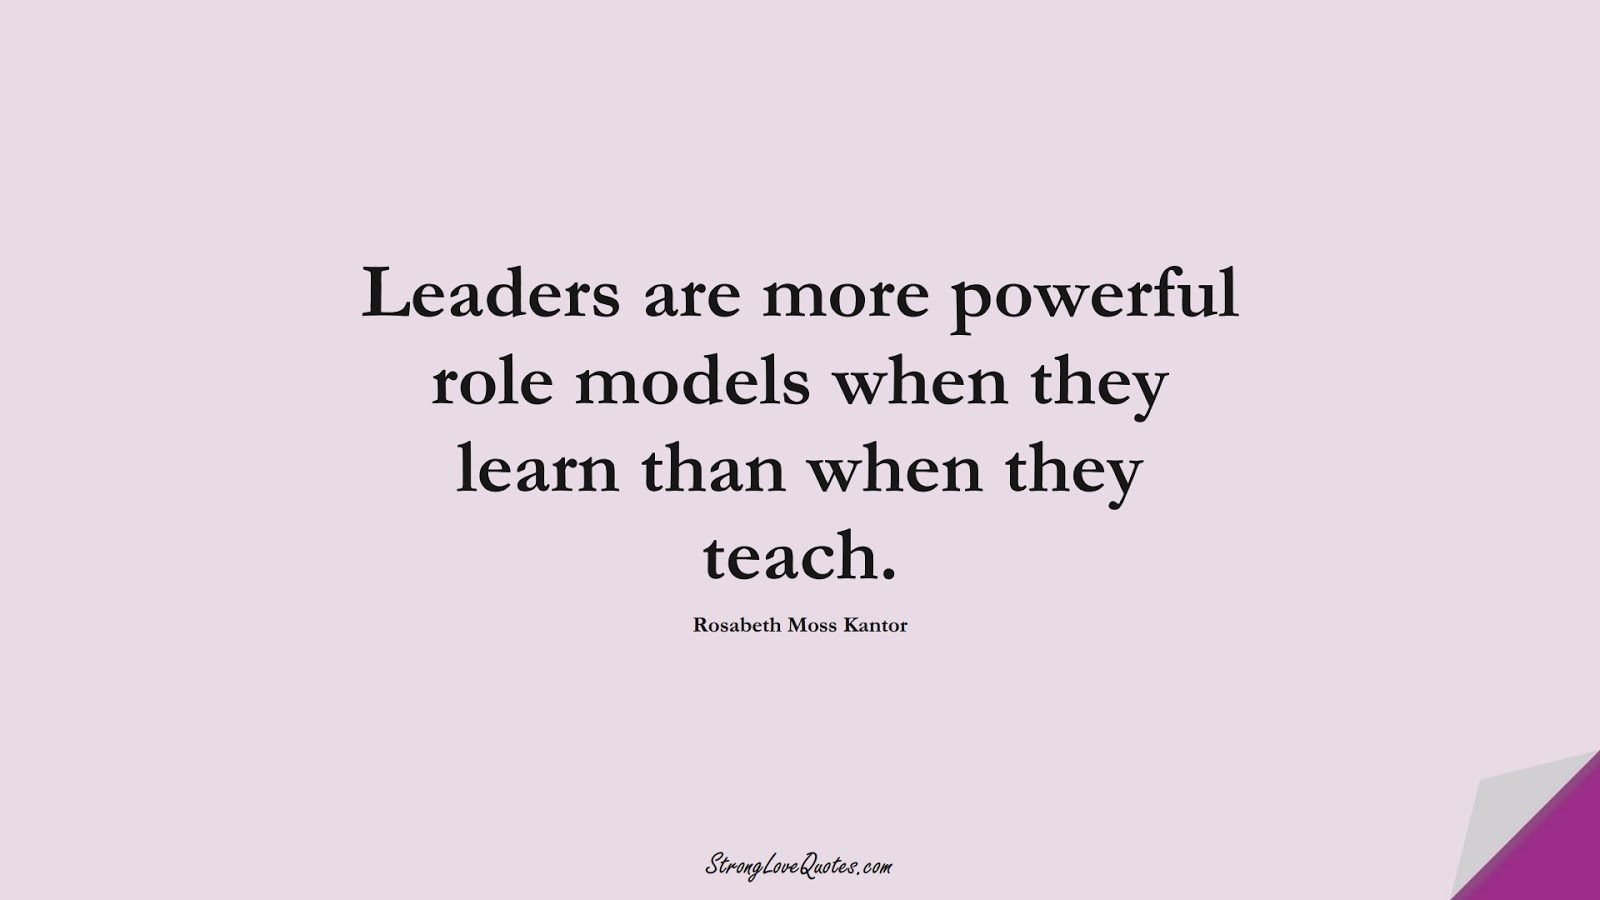 Leaders are more powerful role models when they learn than when they teach. (Rosabeth Moss Kantor);  #LearningQuotes